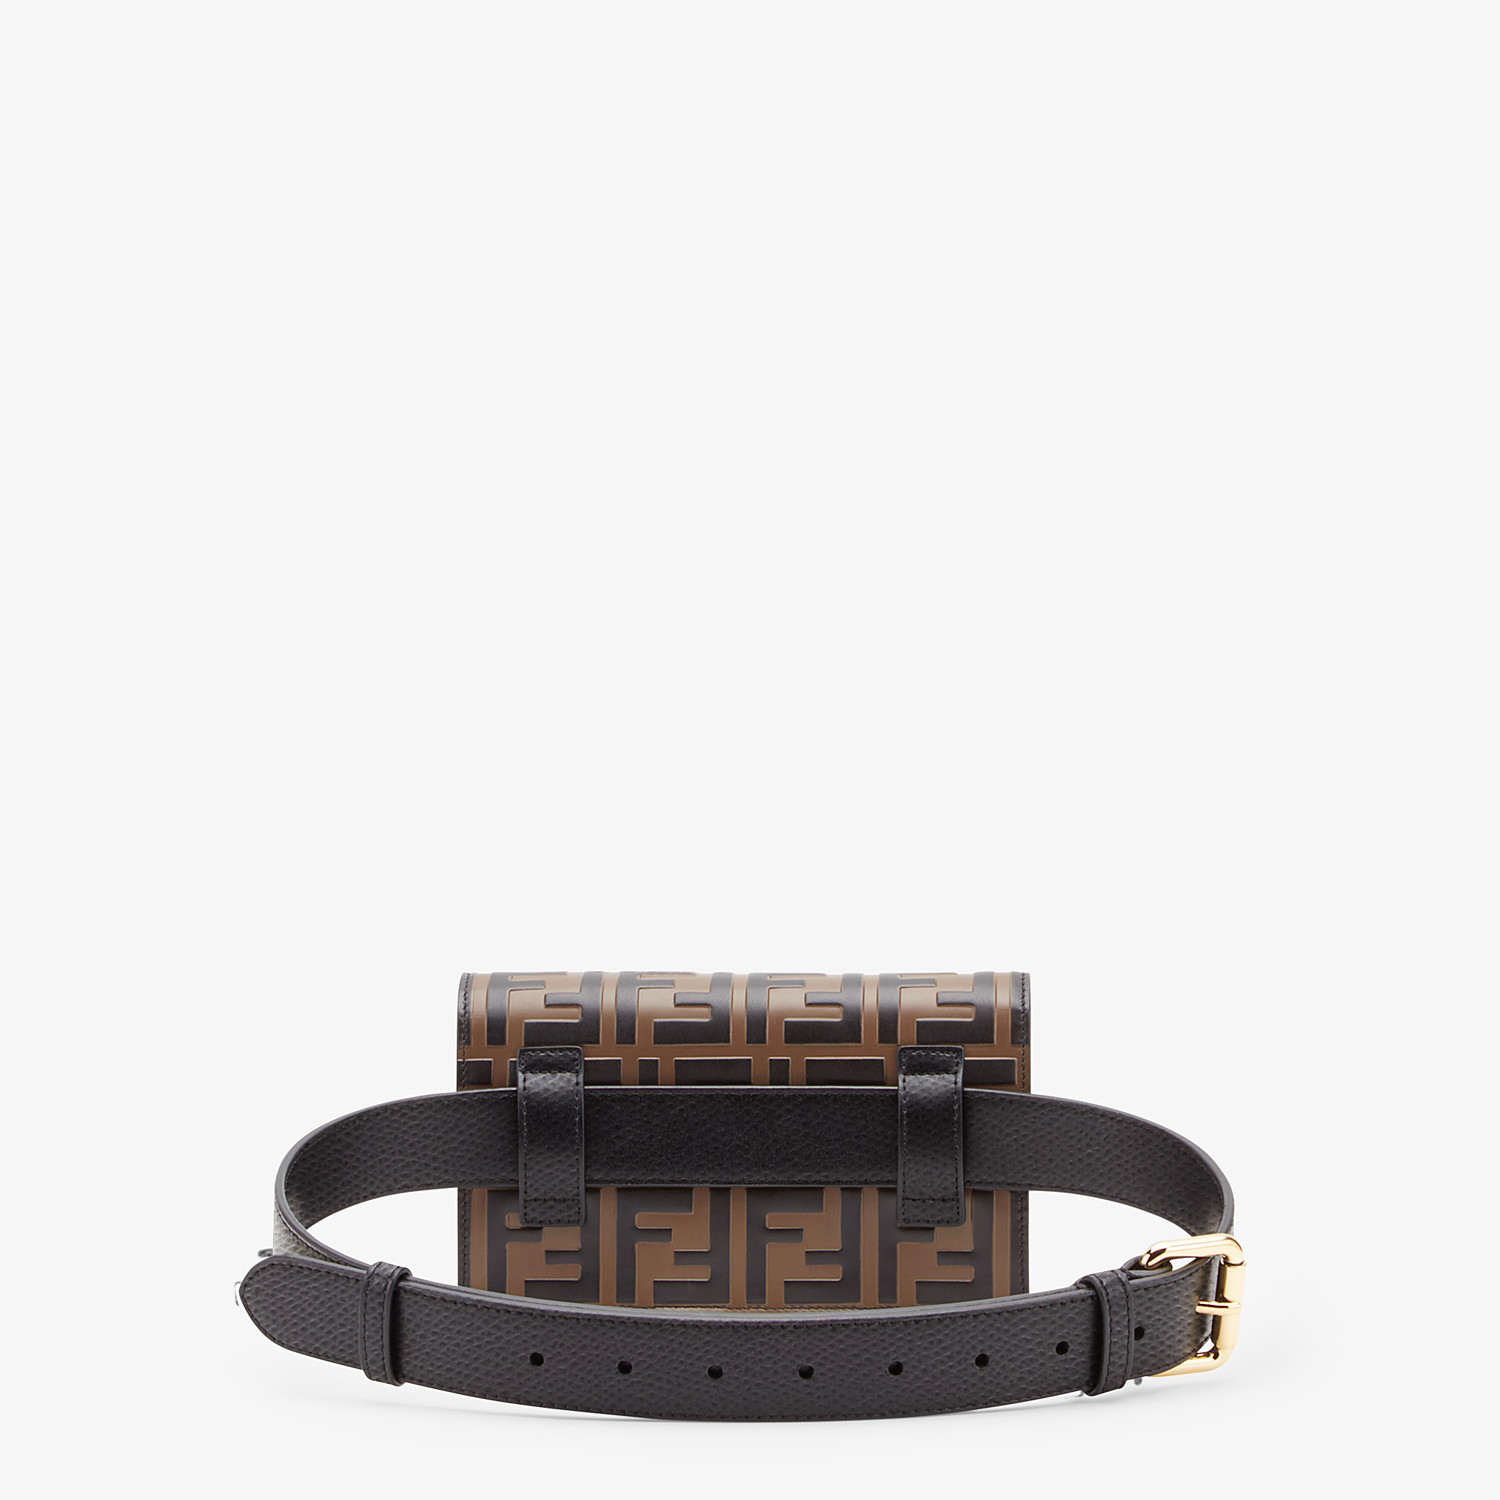 FENDI BELT BAG - Multicolor leather belt bag - view 4 detail